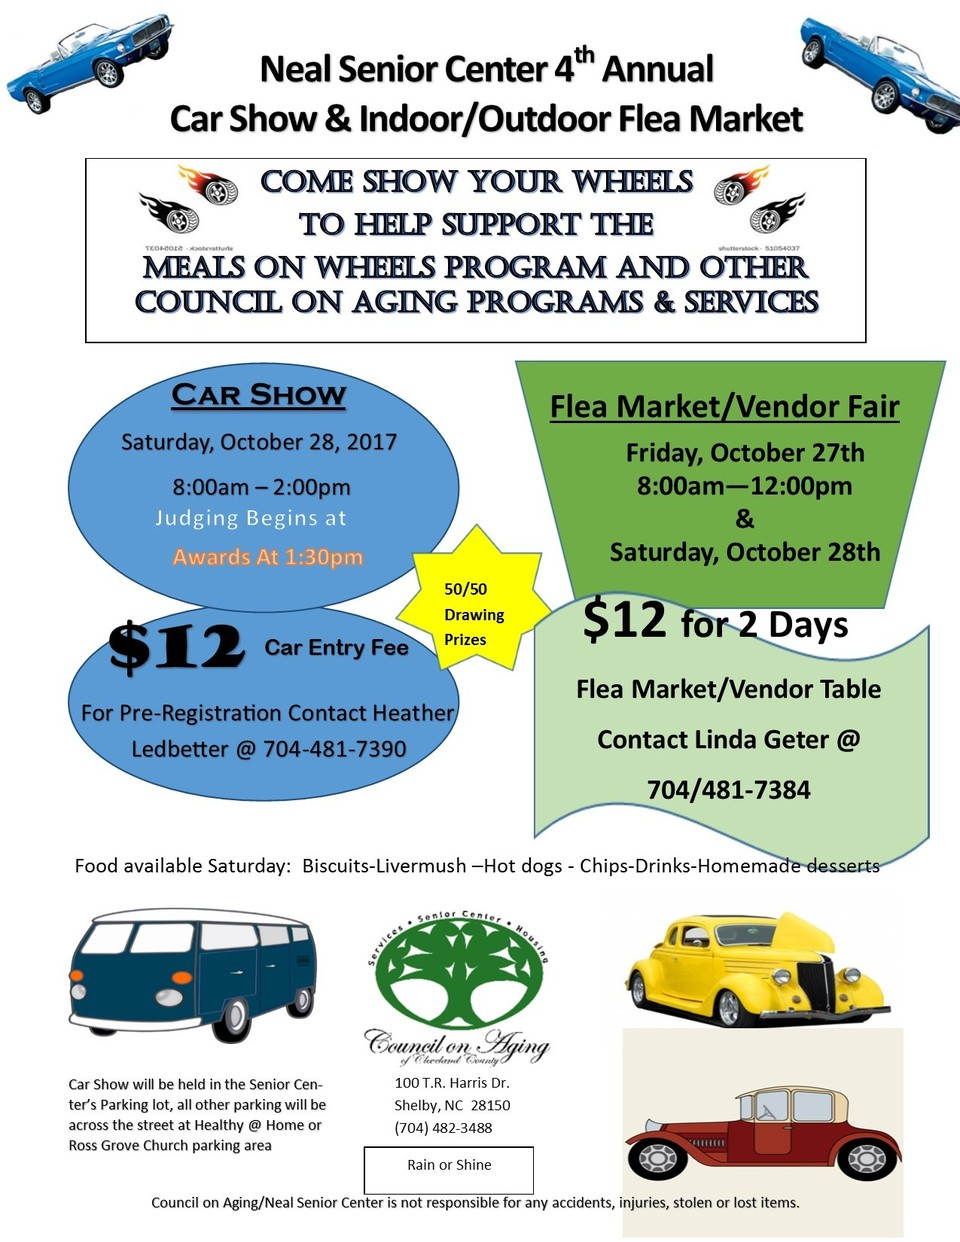 Car Show @ COA/Neal Senior Center